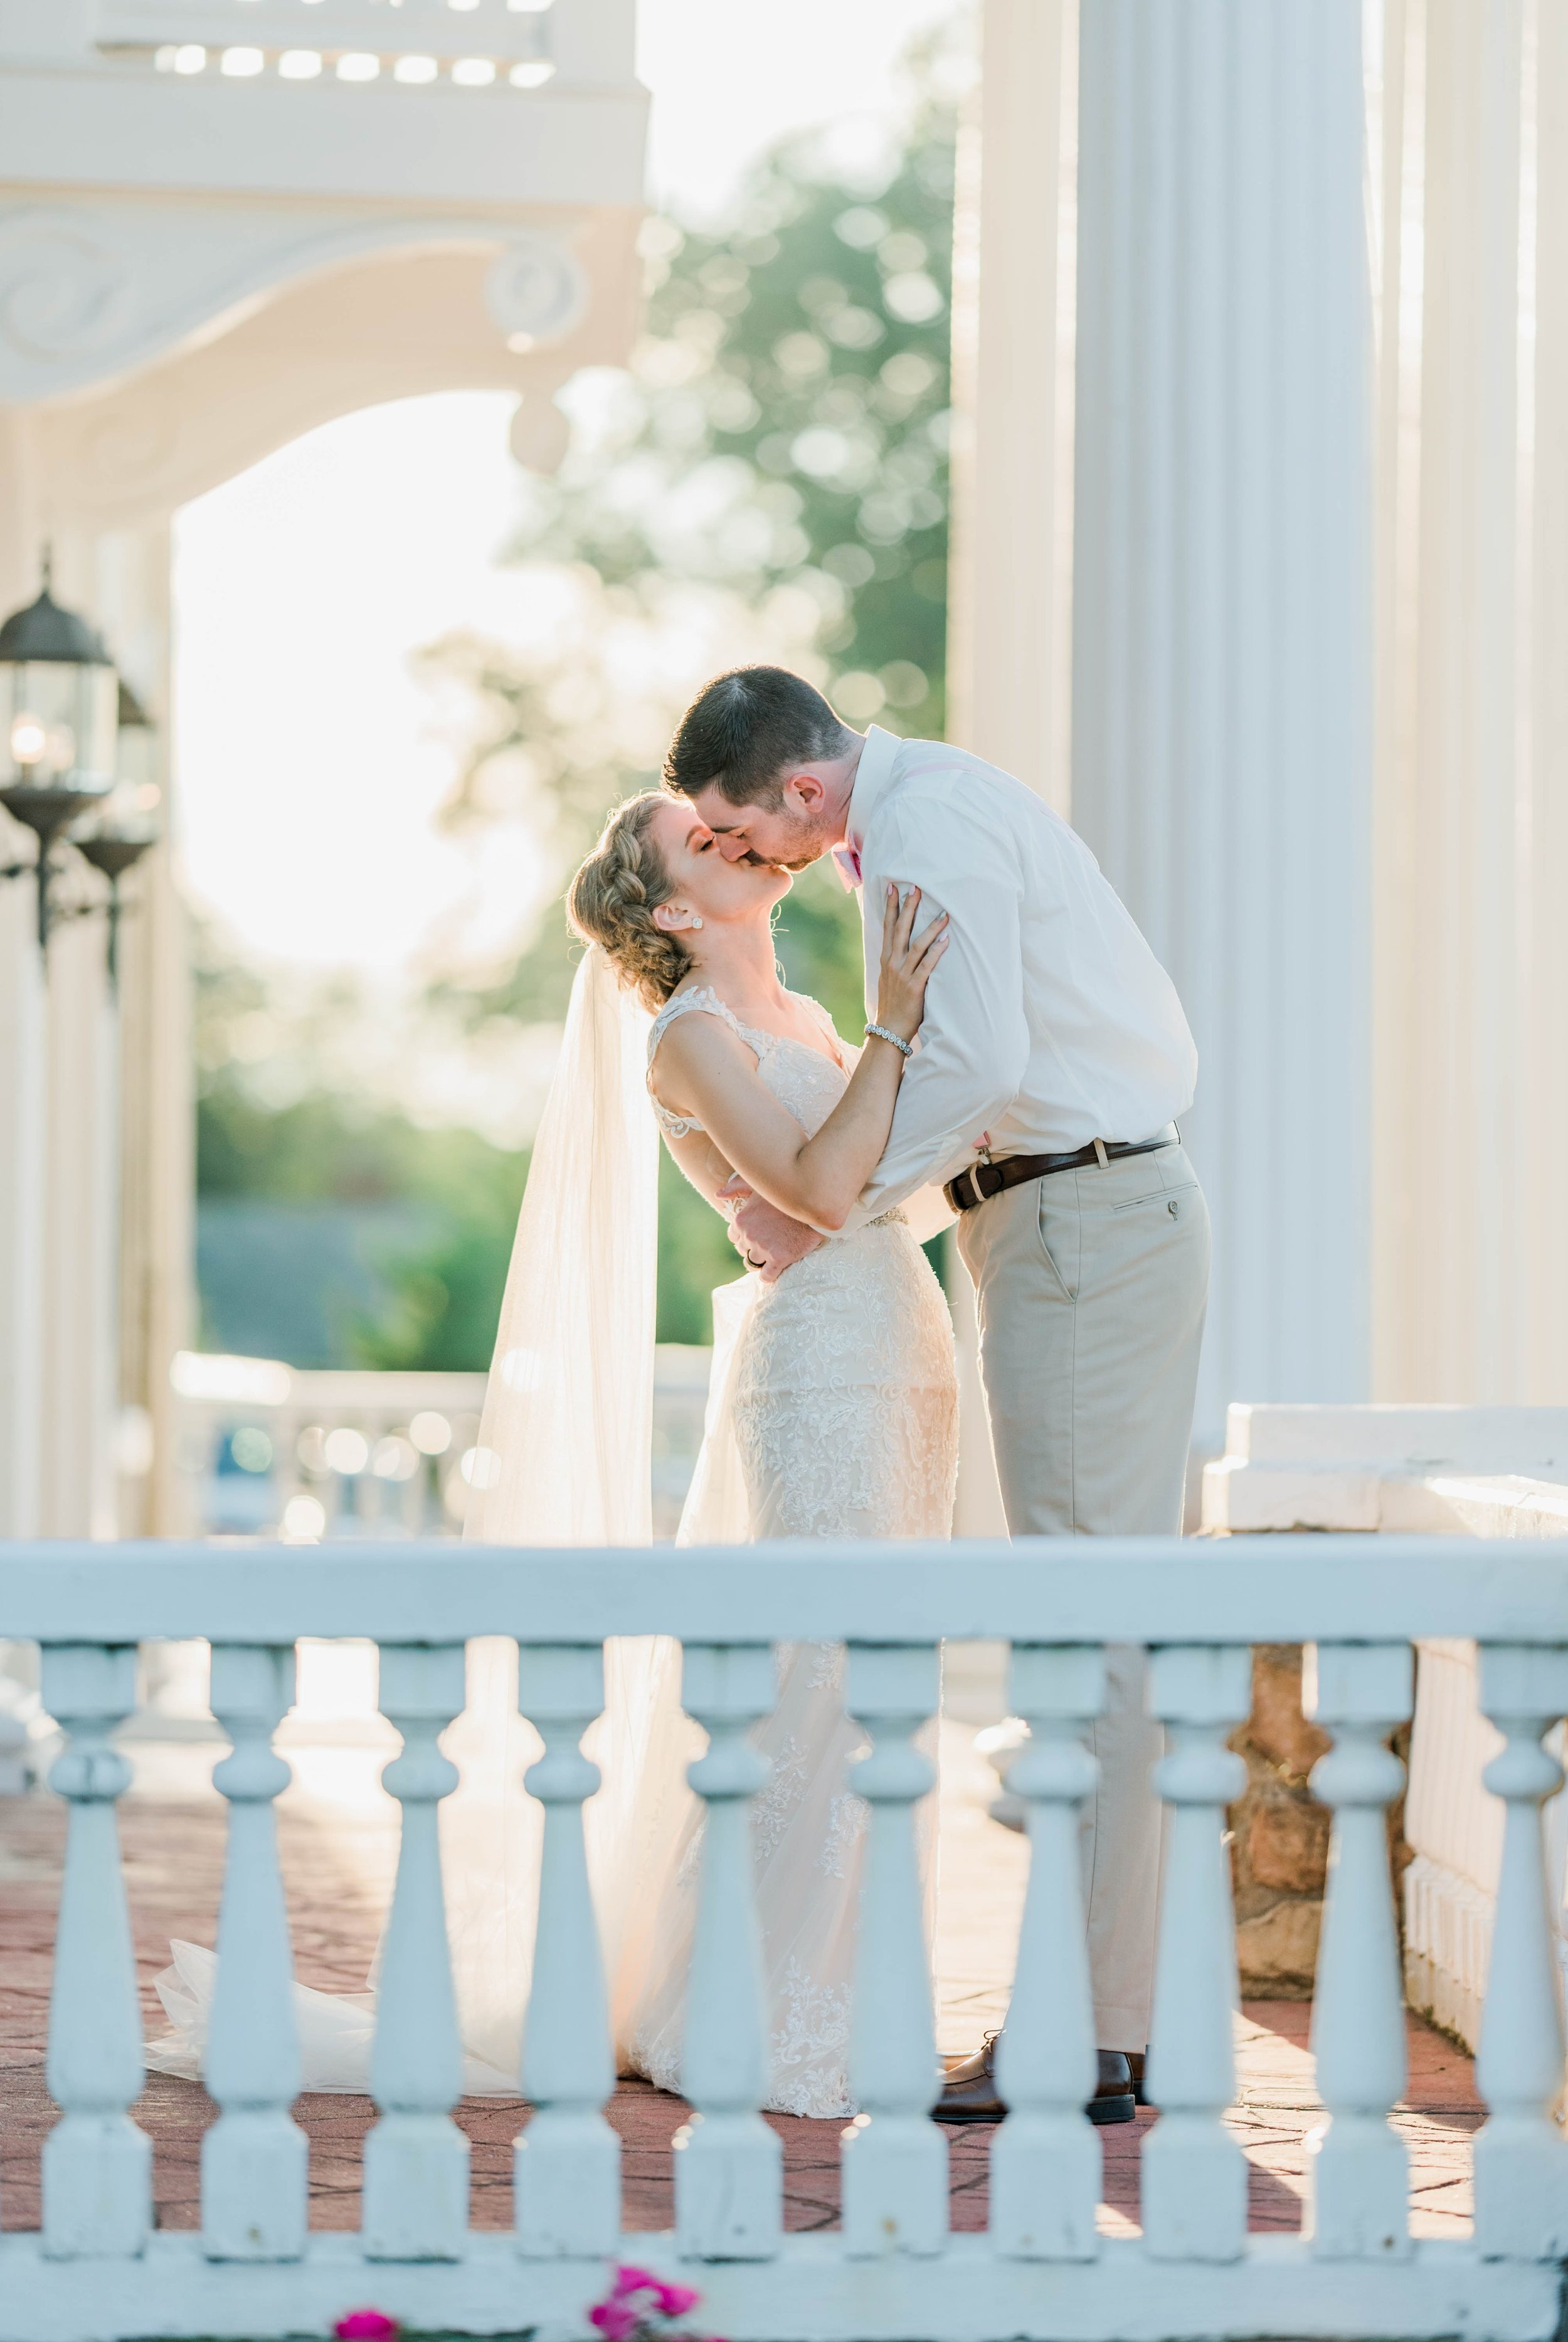 BedfordColumns_EntwinedEvents_Lynchburgwedding_VIrginiaweddingphotographer_ALlisonNIck 26.jpg